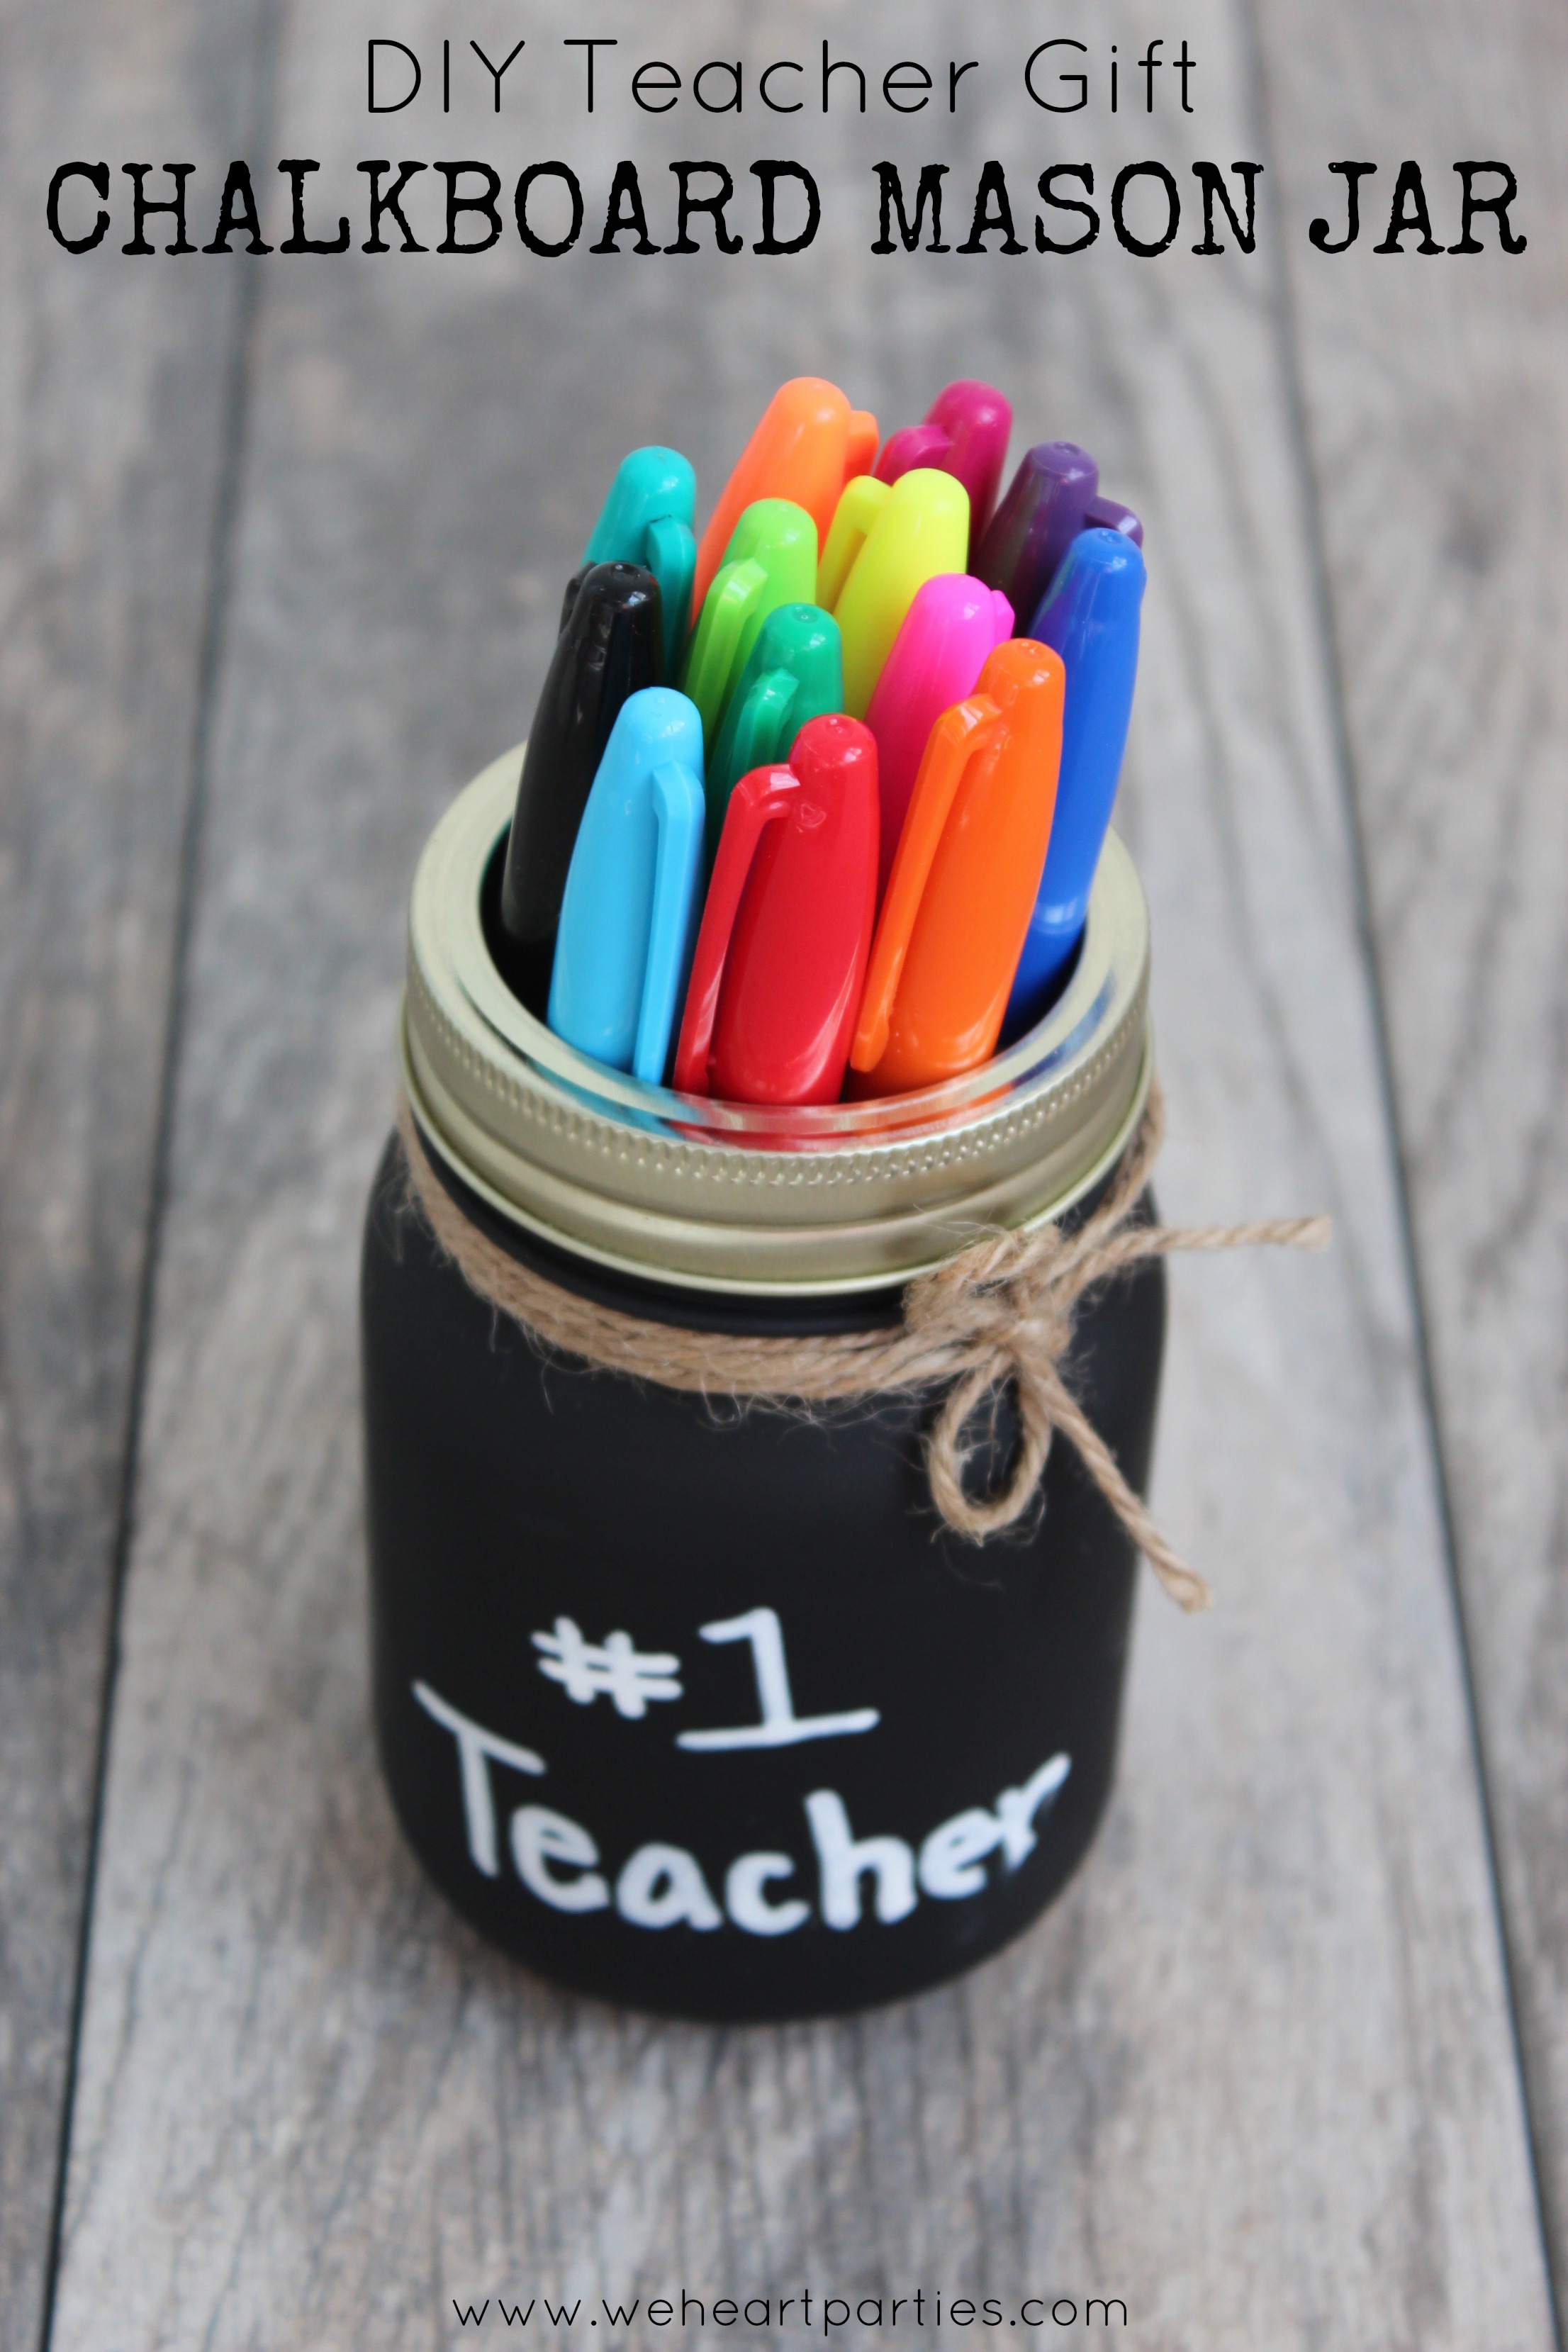 Gift Idea: Chalkboard Jar with a Message